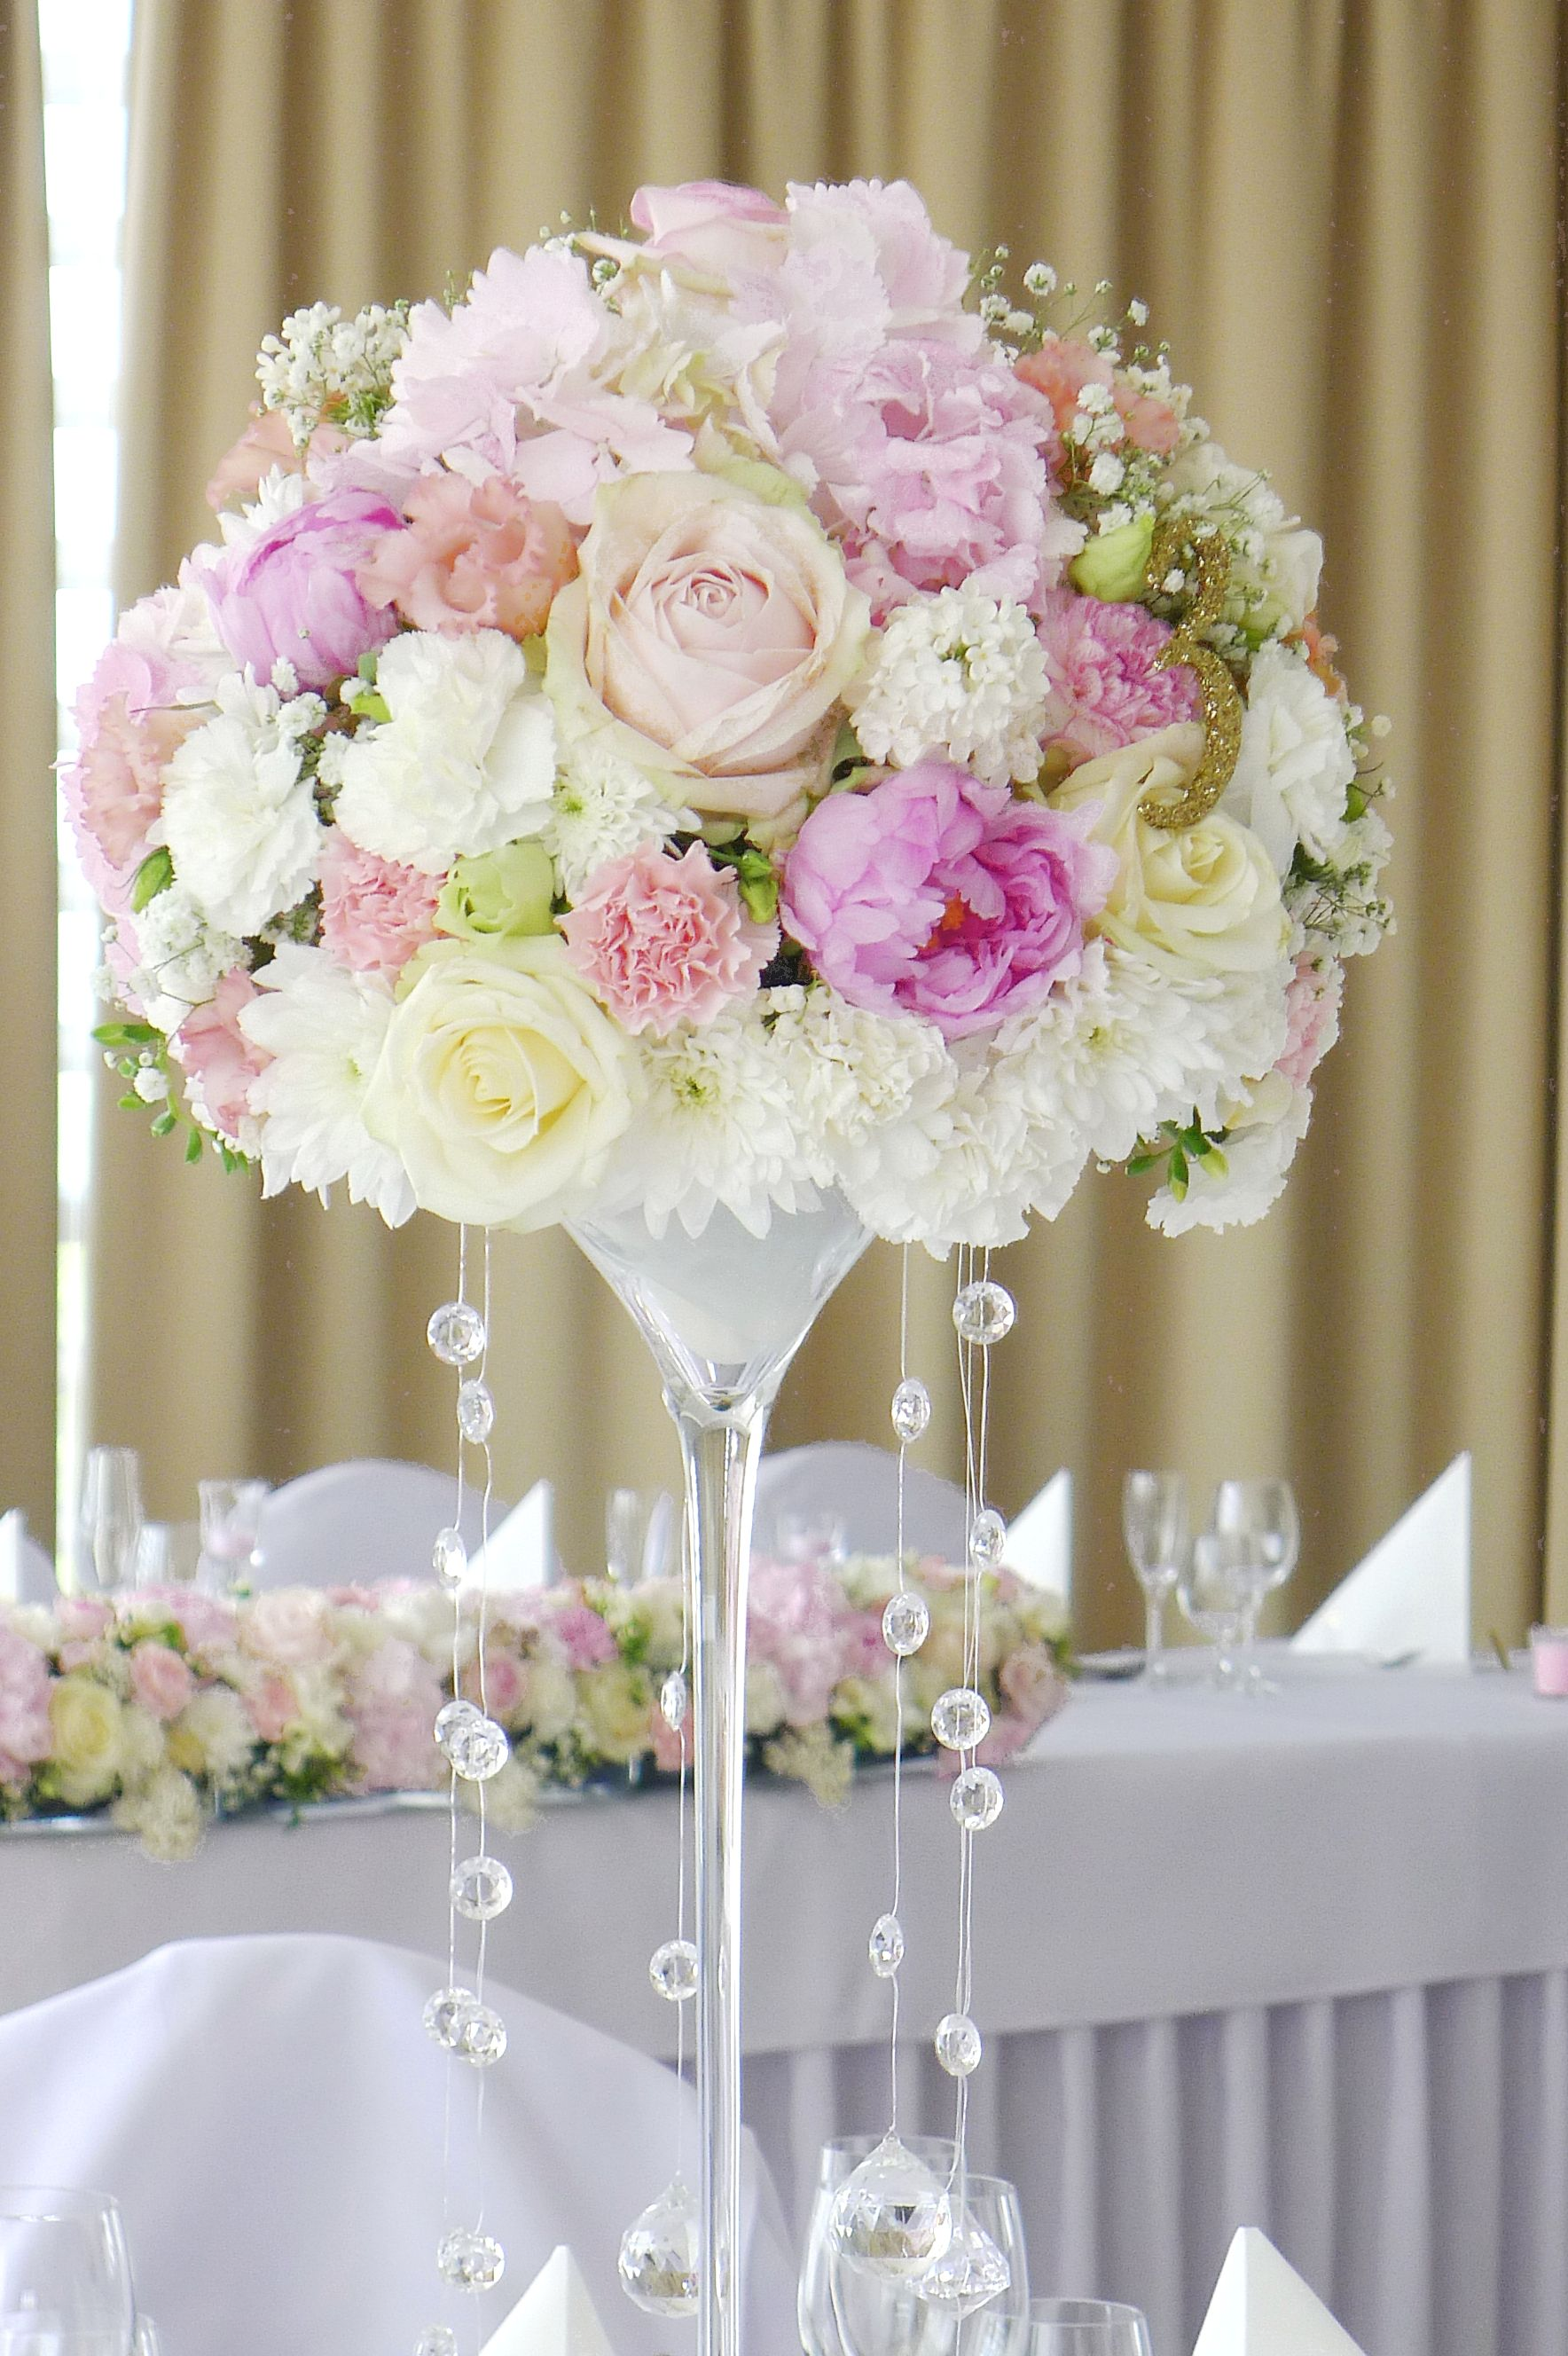 Tall Floral Centerpiece In Peach And Pink With Hanging Crystals